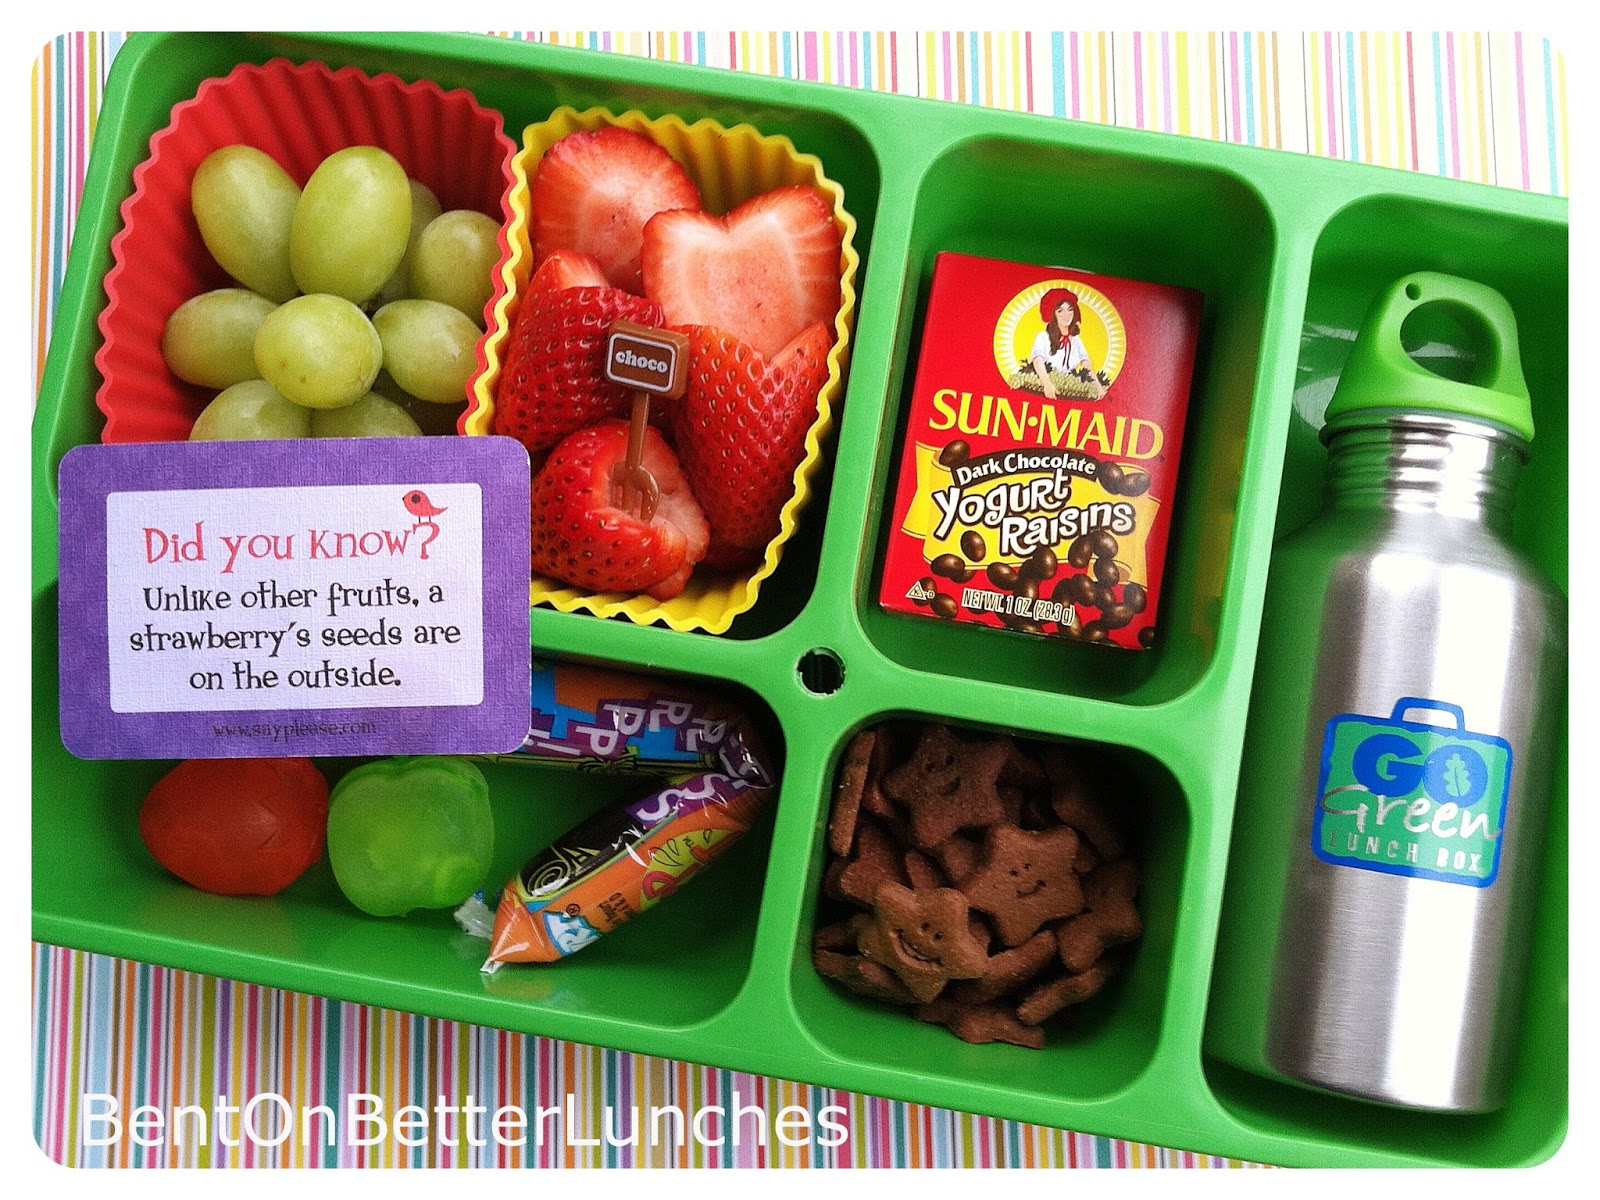 Go Green Lunch Box Kids Choice